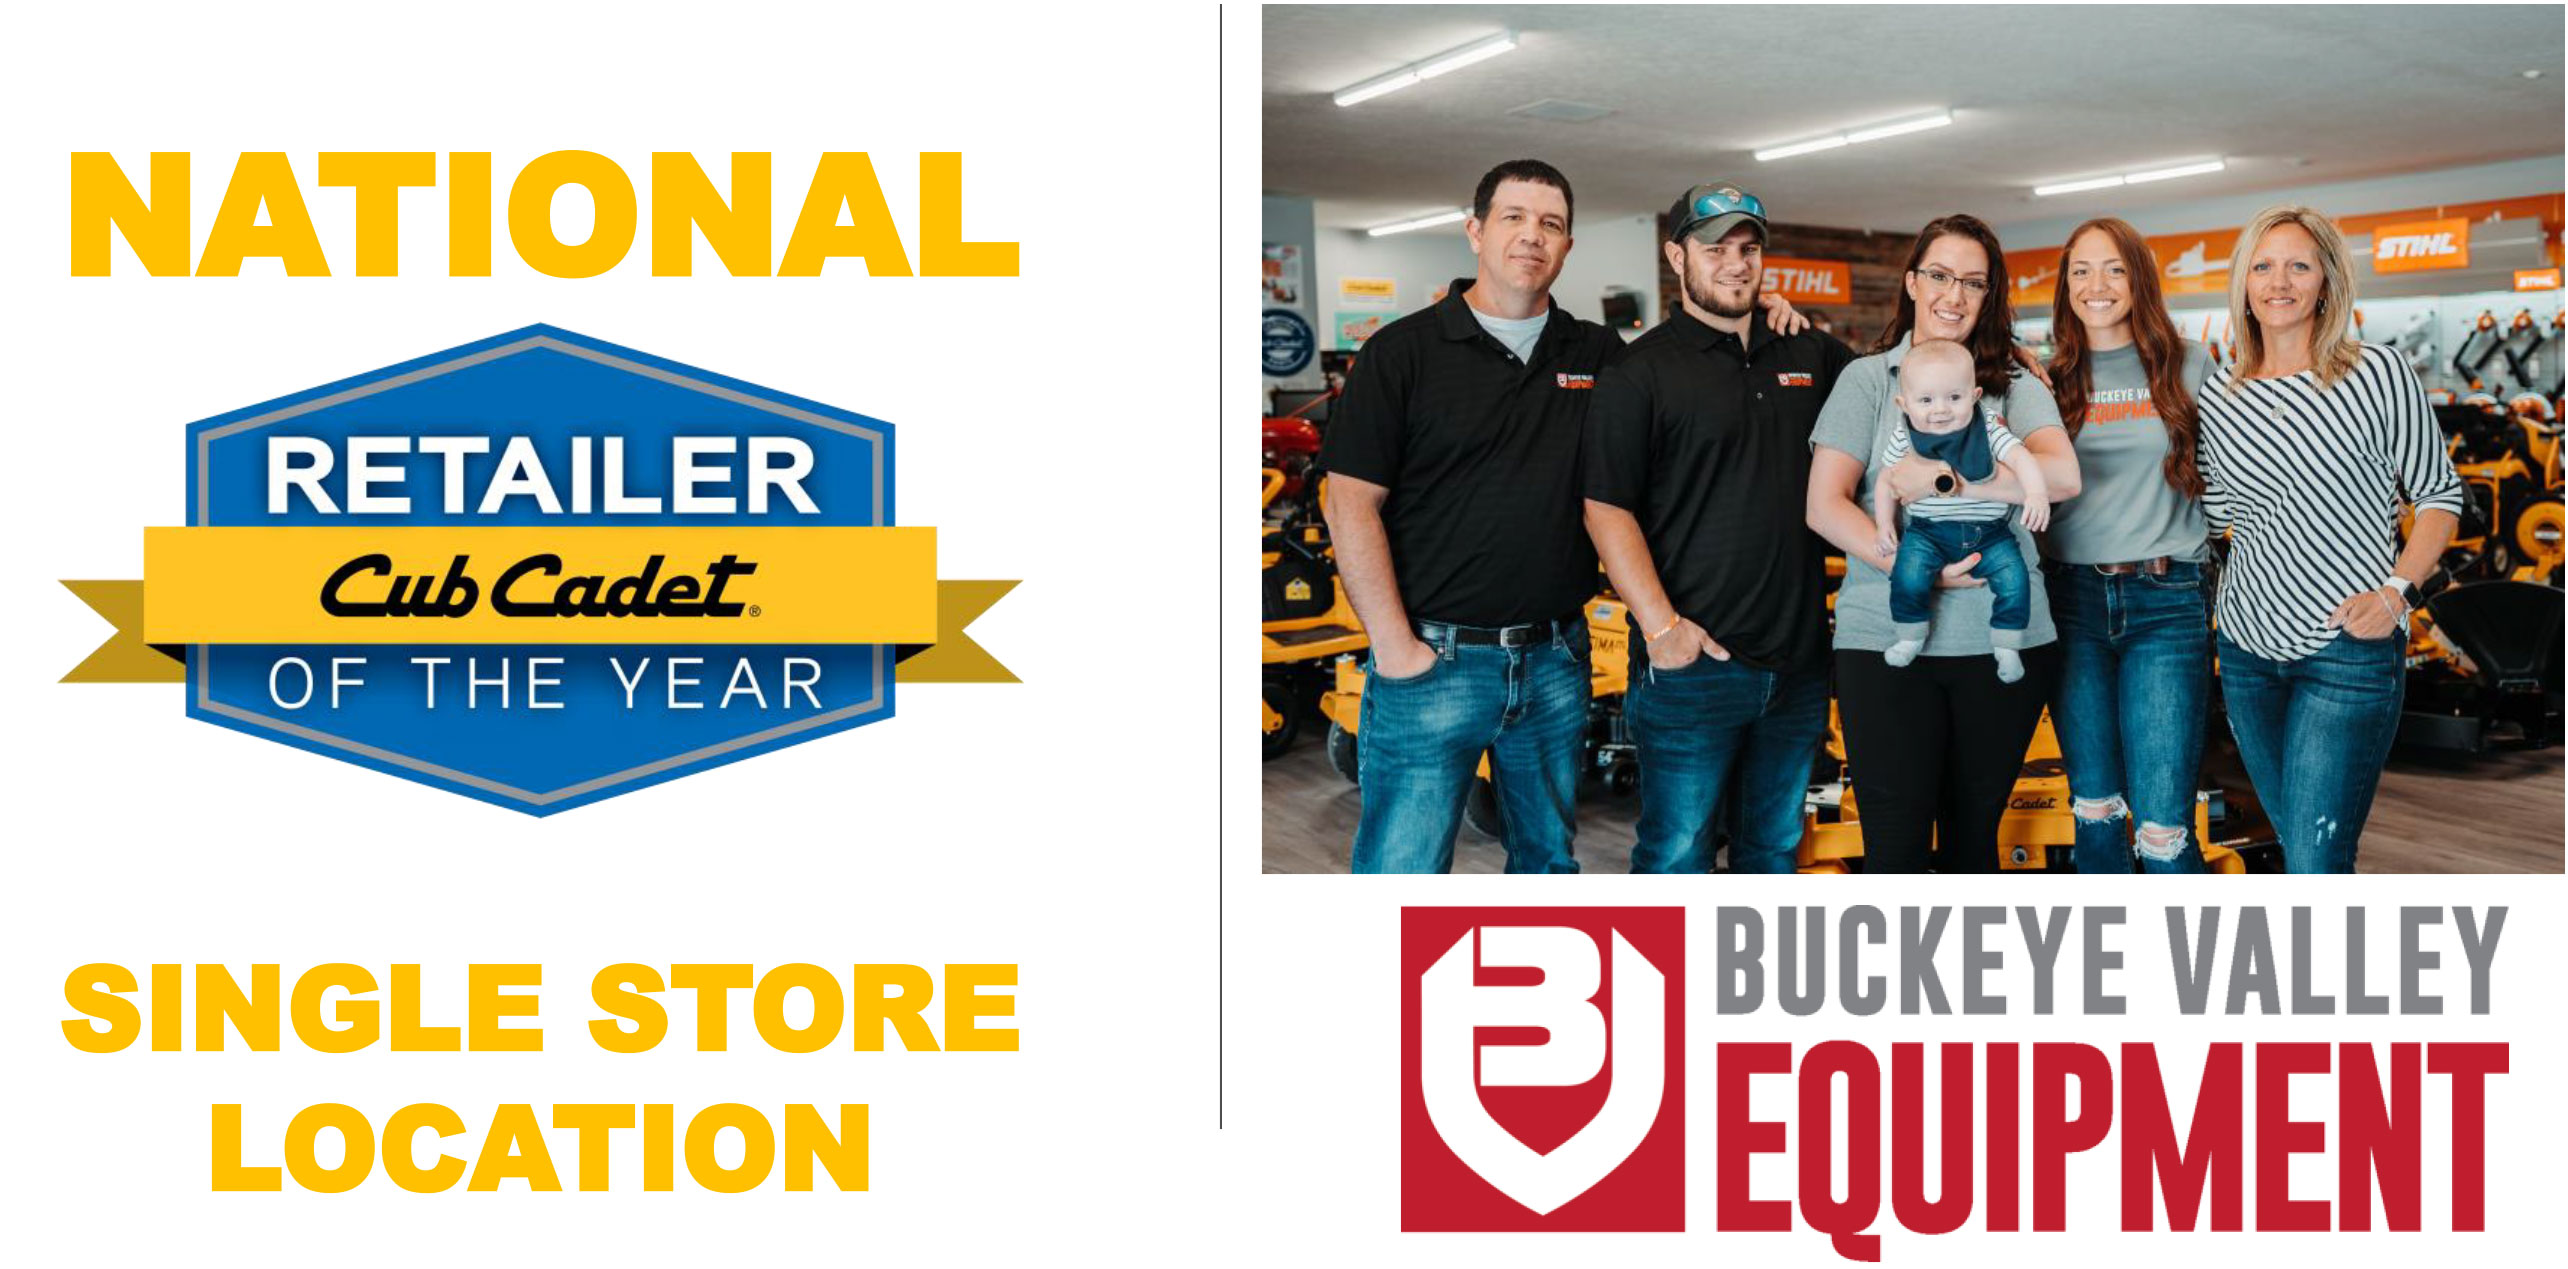 Buckeye-Valley-Equipment-Retailer-Of-The-Year-2020